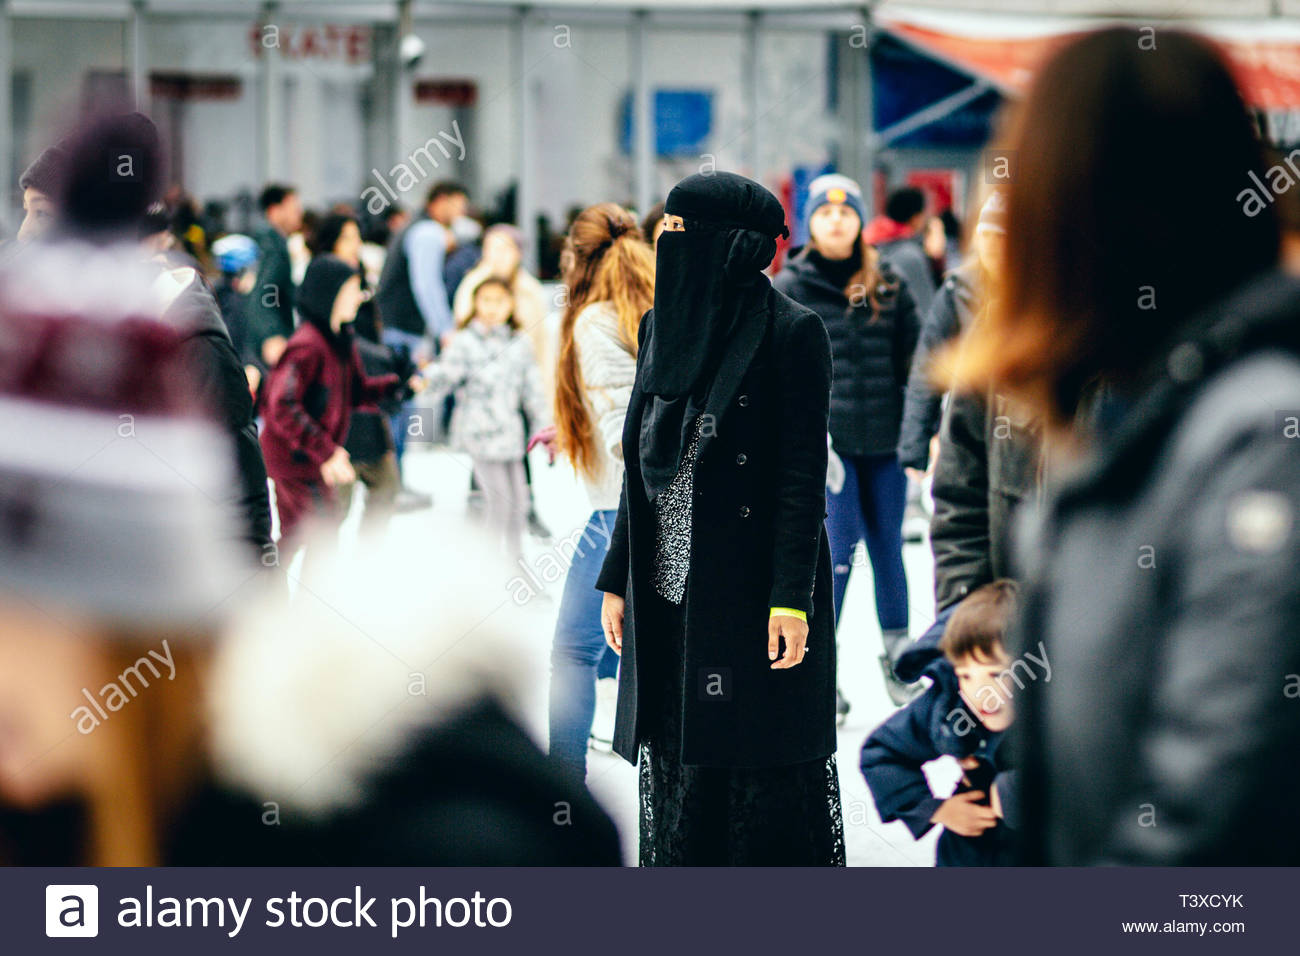 A woman with a niqab is ice skating at the end of year celebrations in New York on December 31, 2018. Une femme avec un niqab fait du patin à glace lo - Stock Image